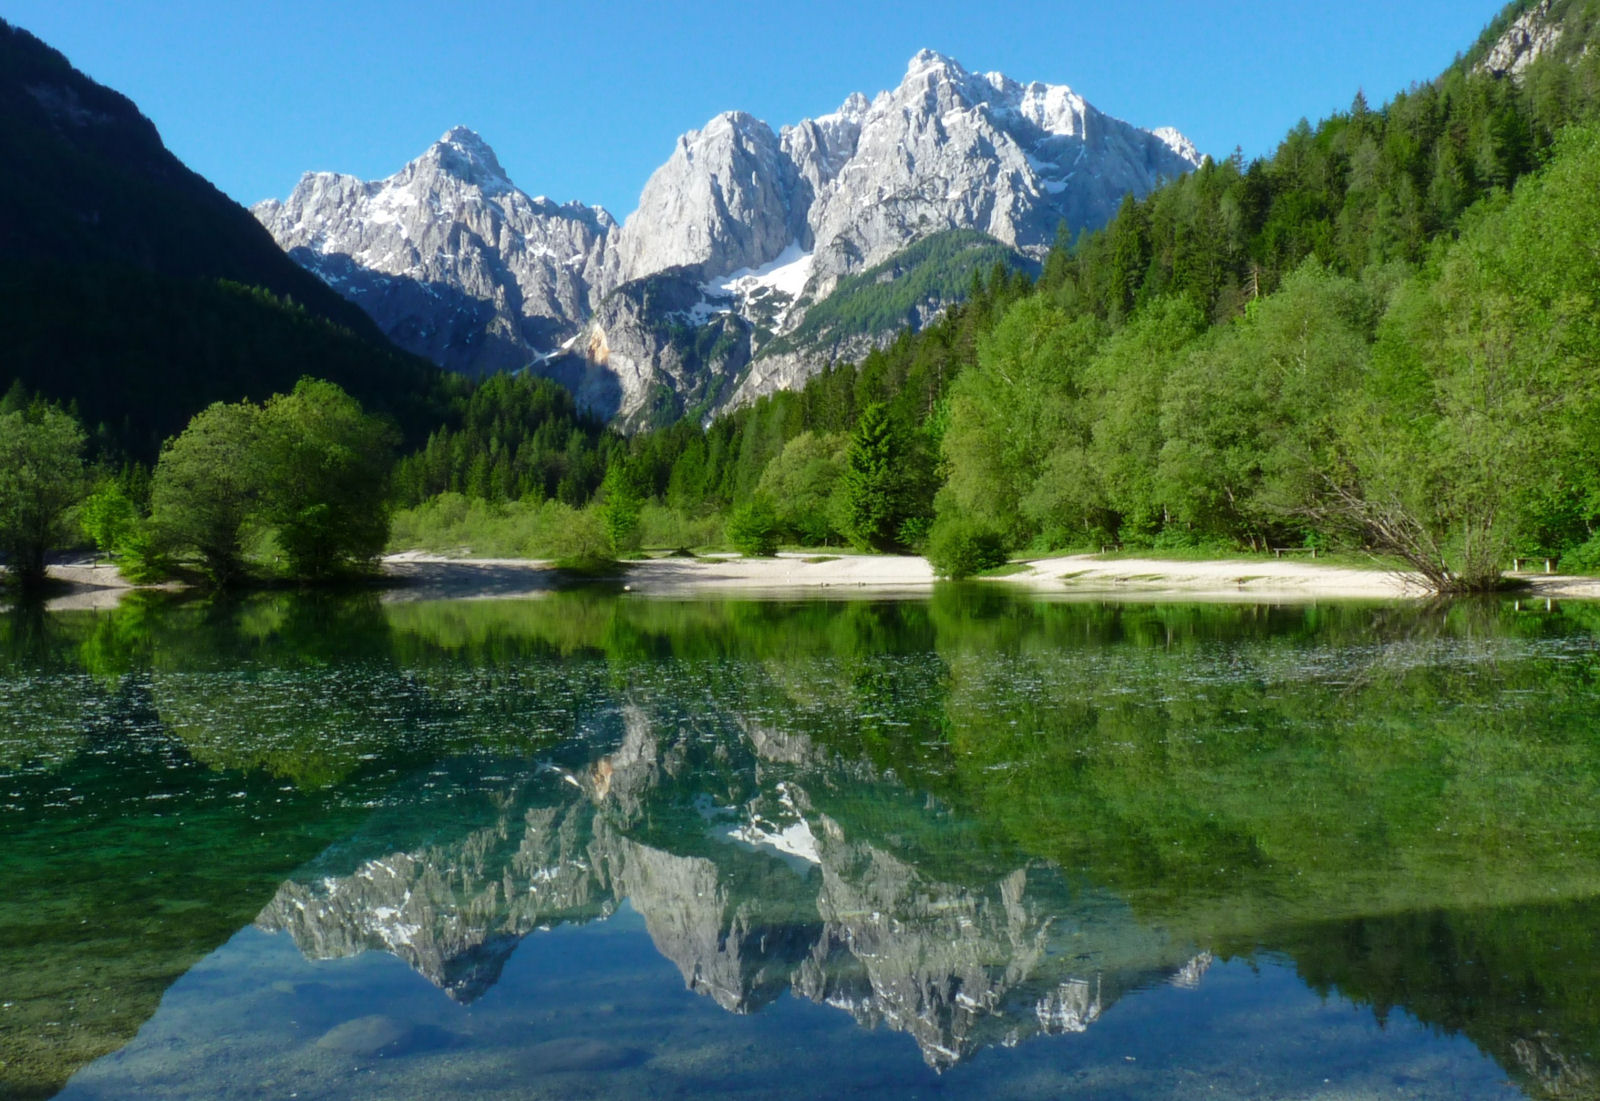 Lake Jasna in the Triglav national park, Slovenia